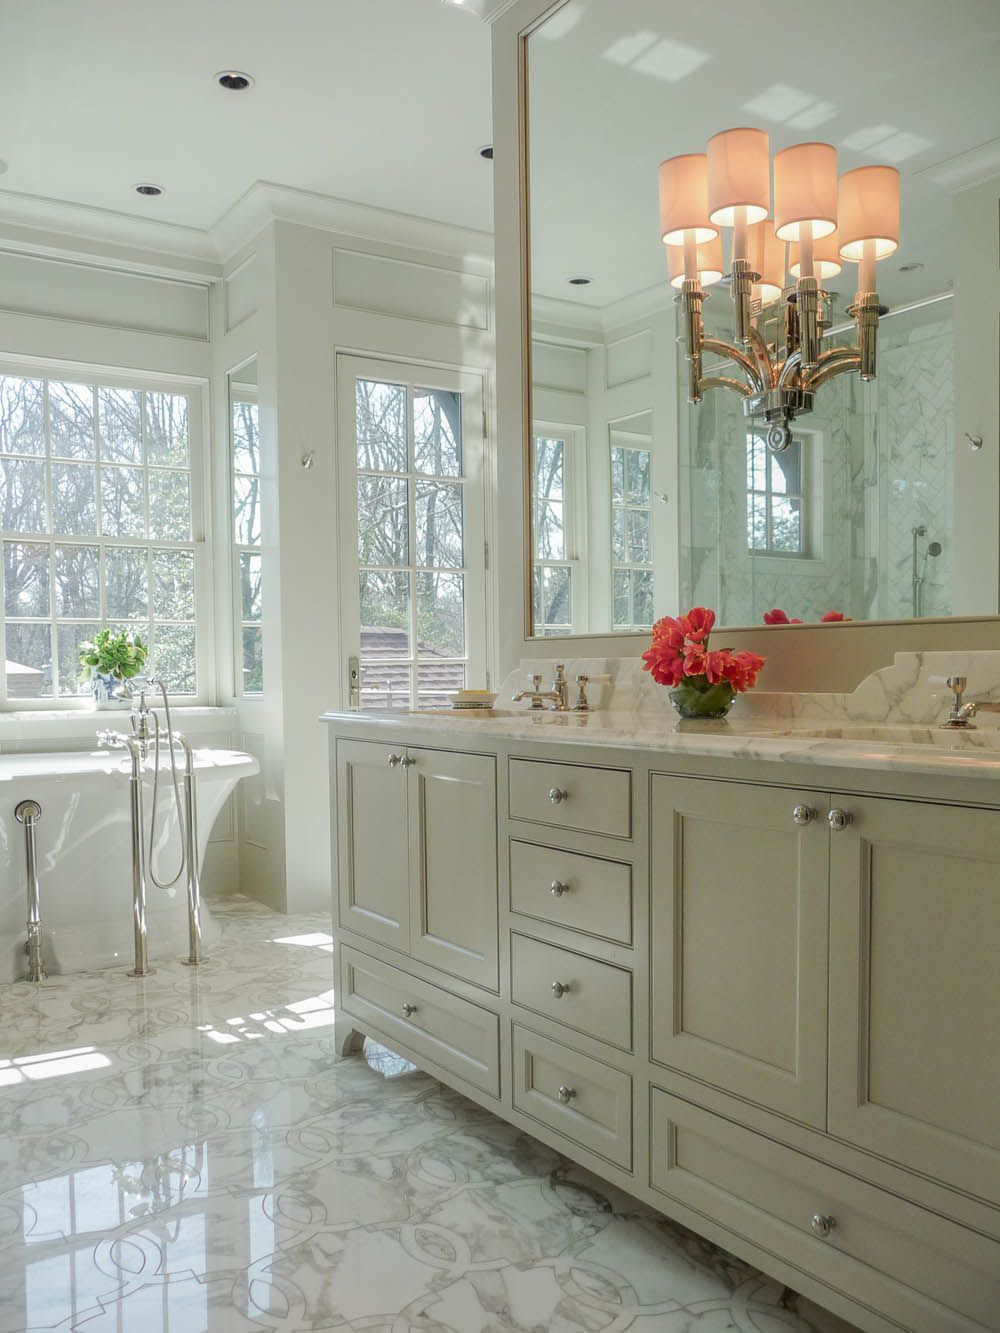 Waterworks Fixtures Custom Cabinetry Inlaid Marble Floors Tub From Renaissance Tile Bath